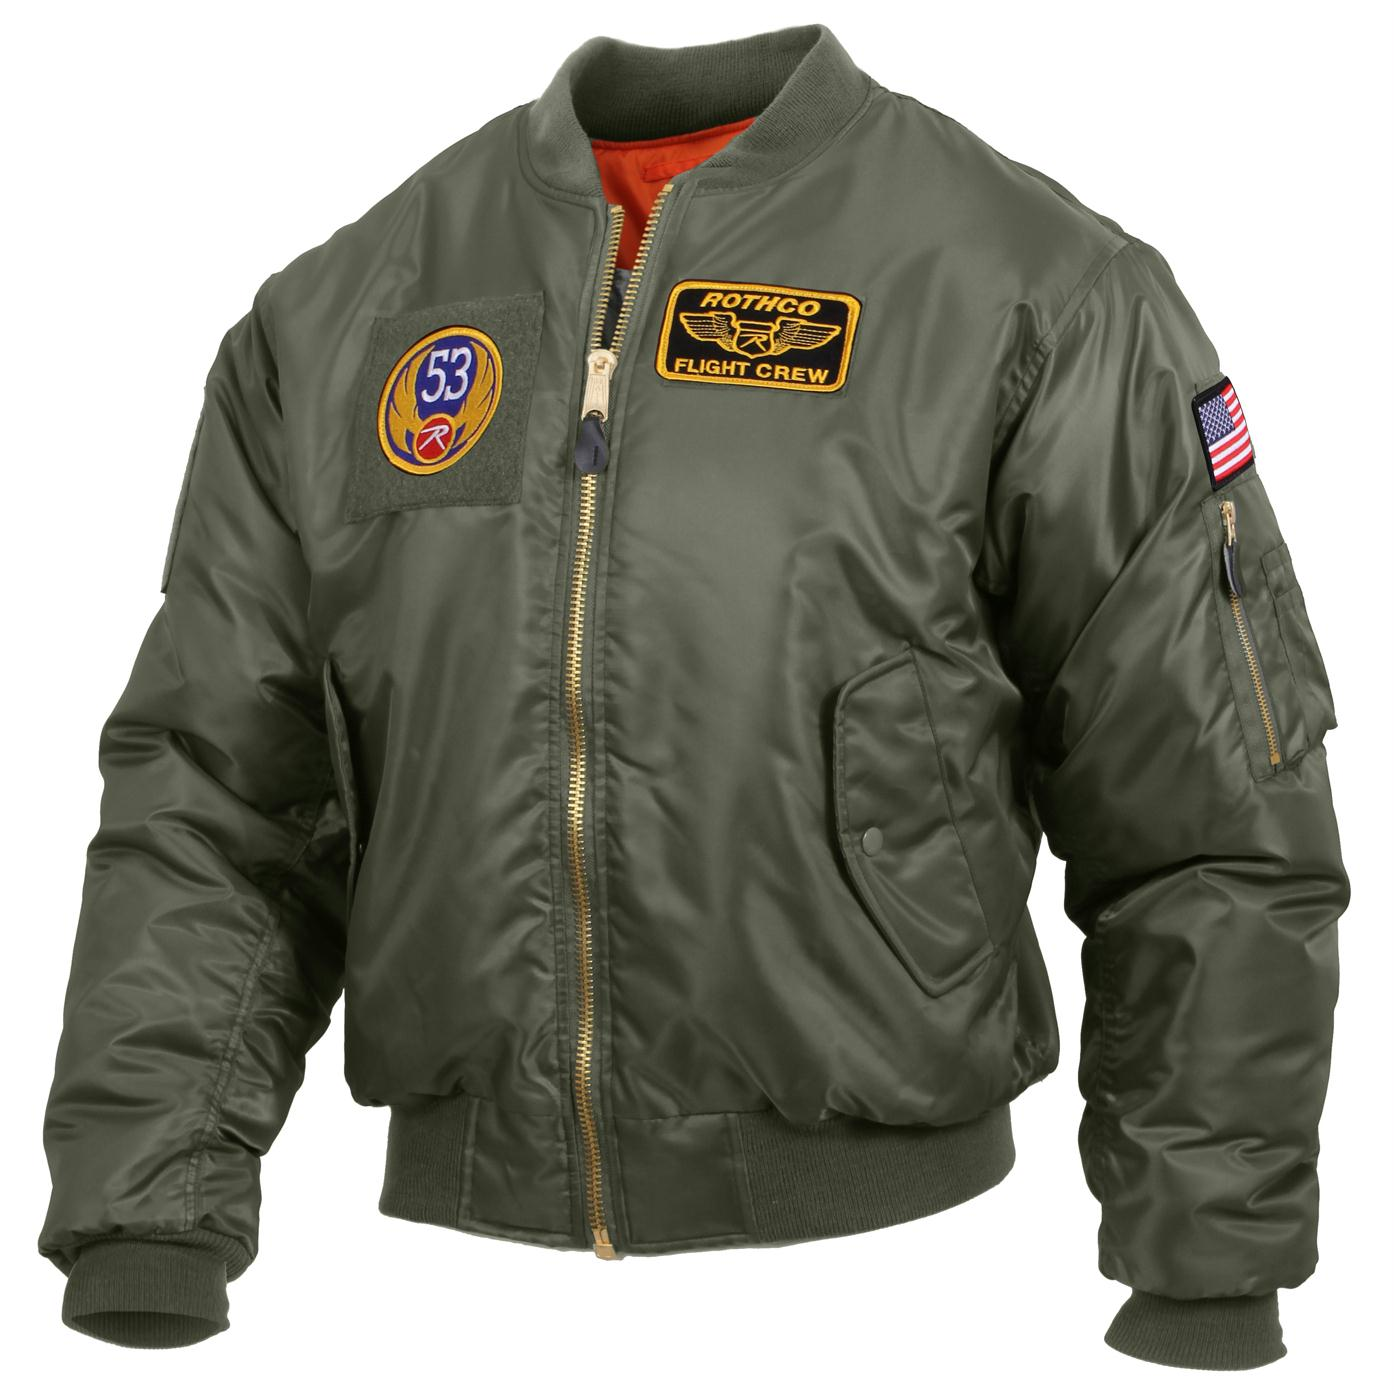 Rothco MA-1 Flight Jacket with Patches - Sage Green / L